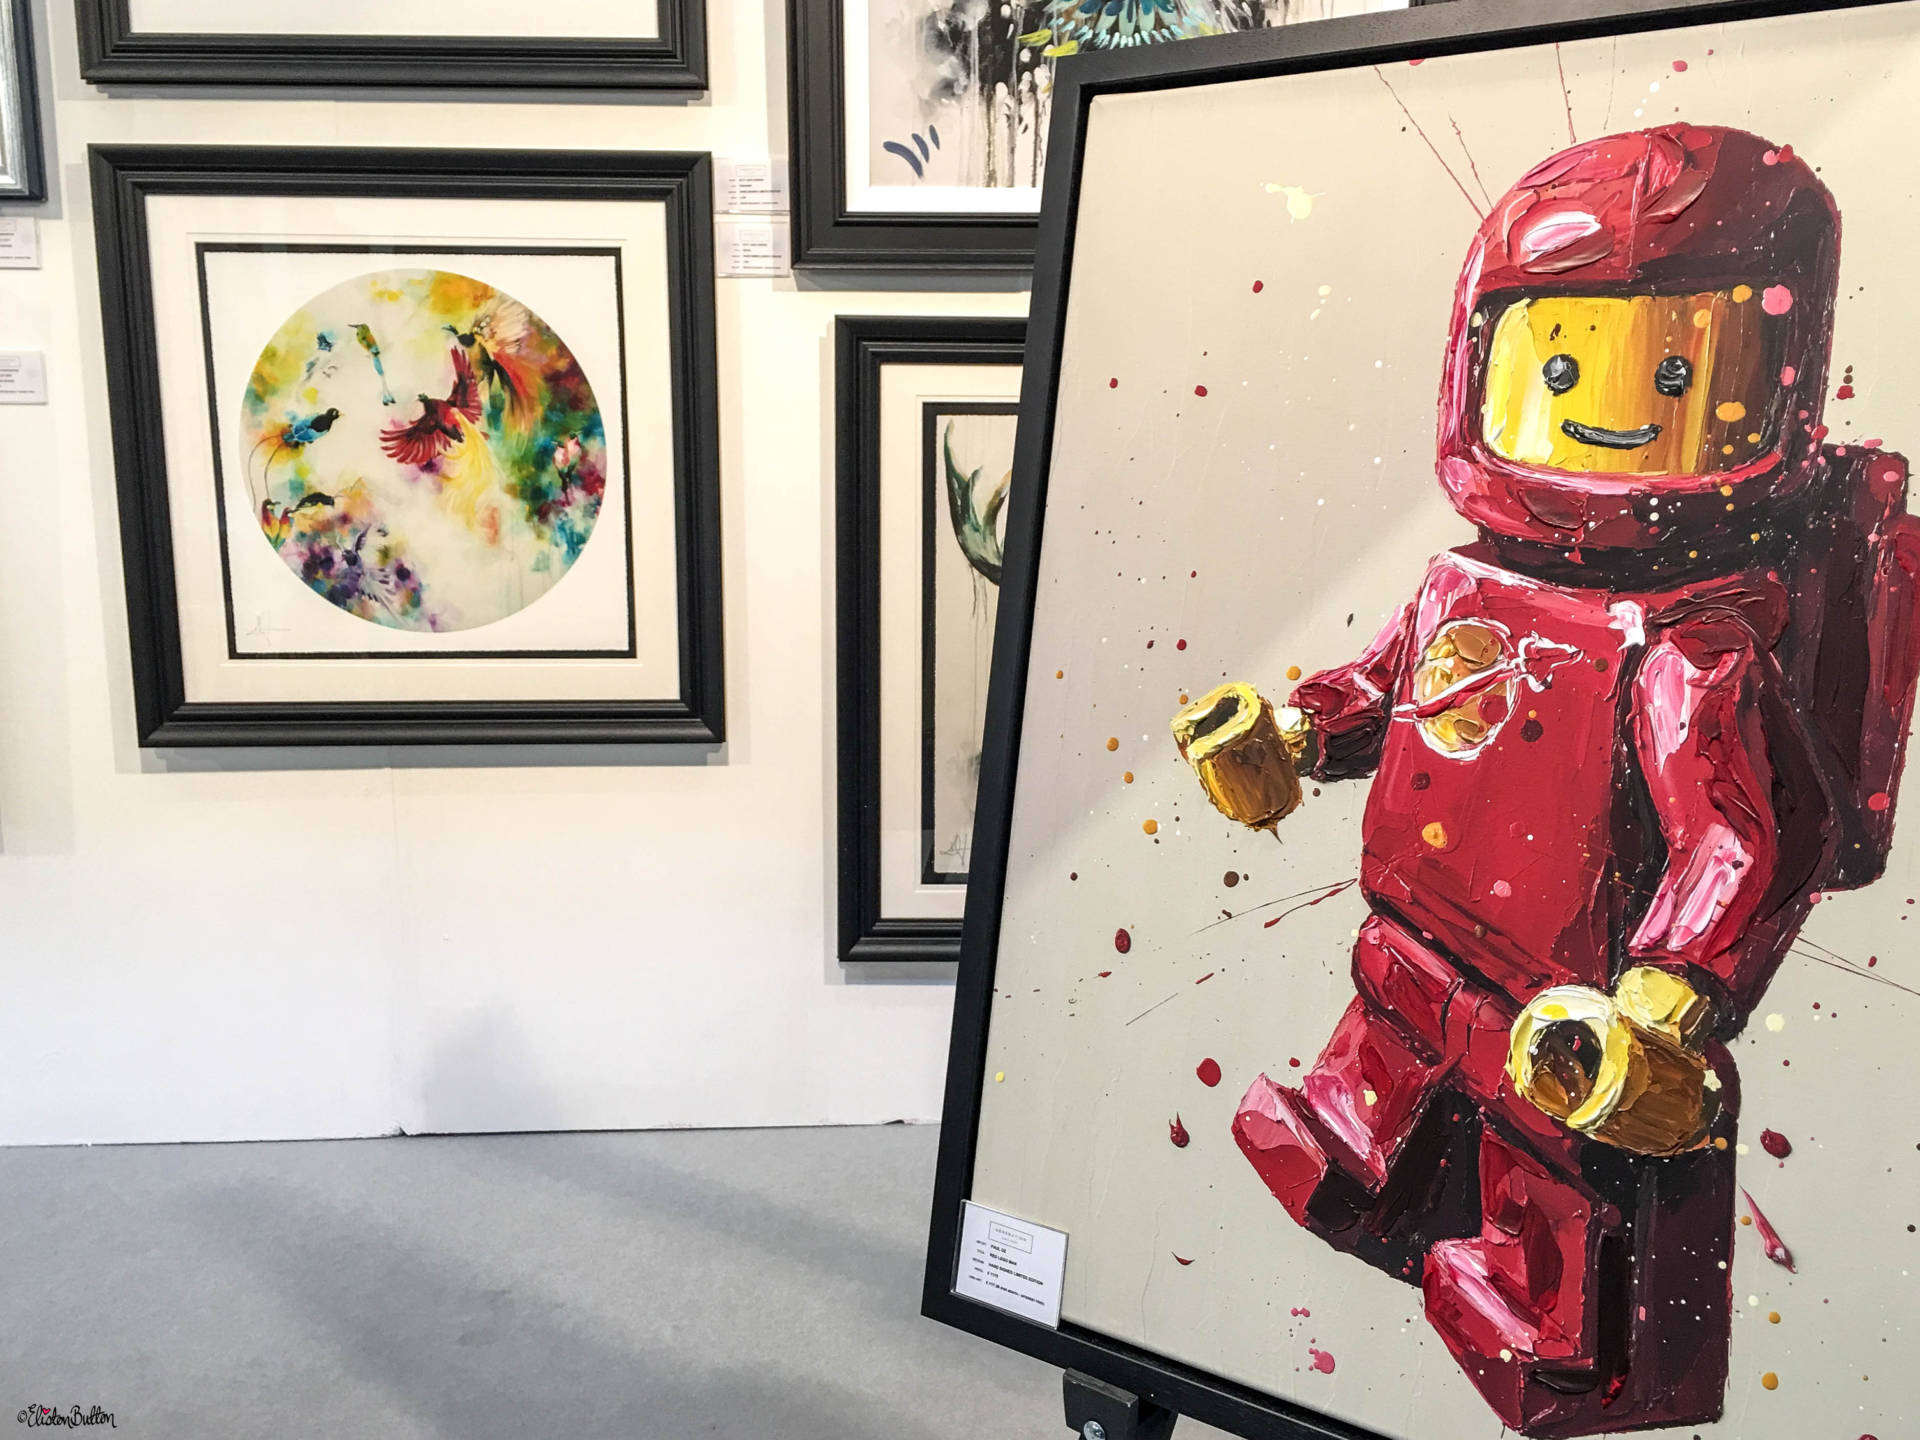 Red Lego Man by Paul Oz at the Generation Gallery Stand at Grand Designs Live 2017 with Eliston Button - Grand Designs Live 2017 – Part One at www.elistonbutton.com - Eliston Button - That Crafty Kid – Art, Design, Craft & Adventure.